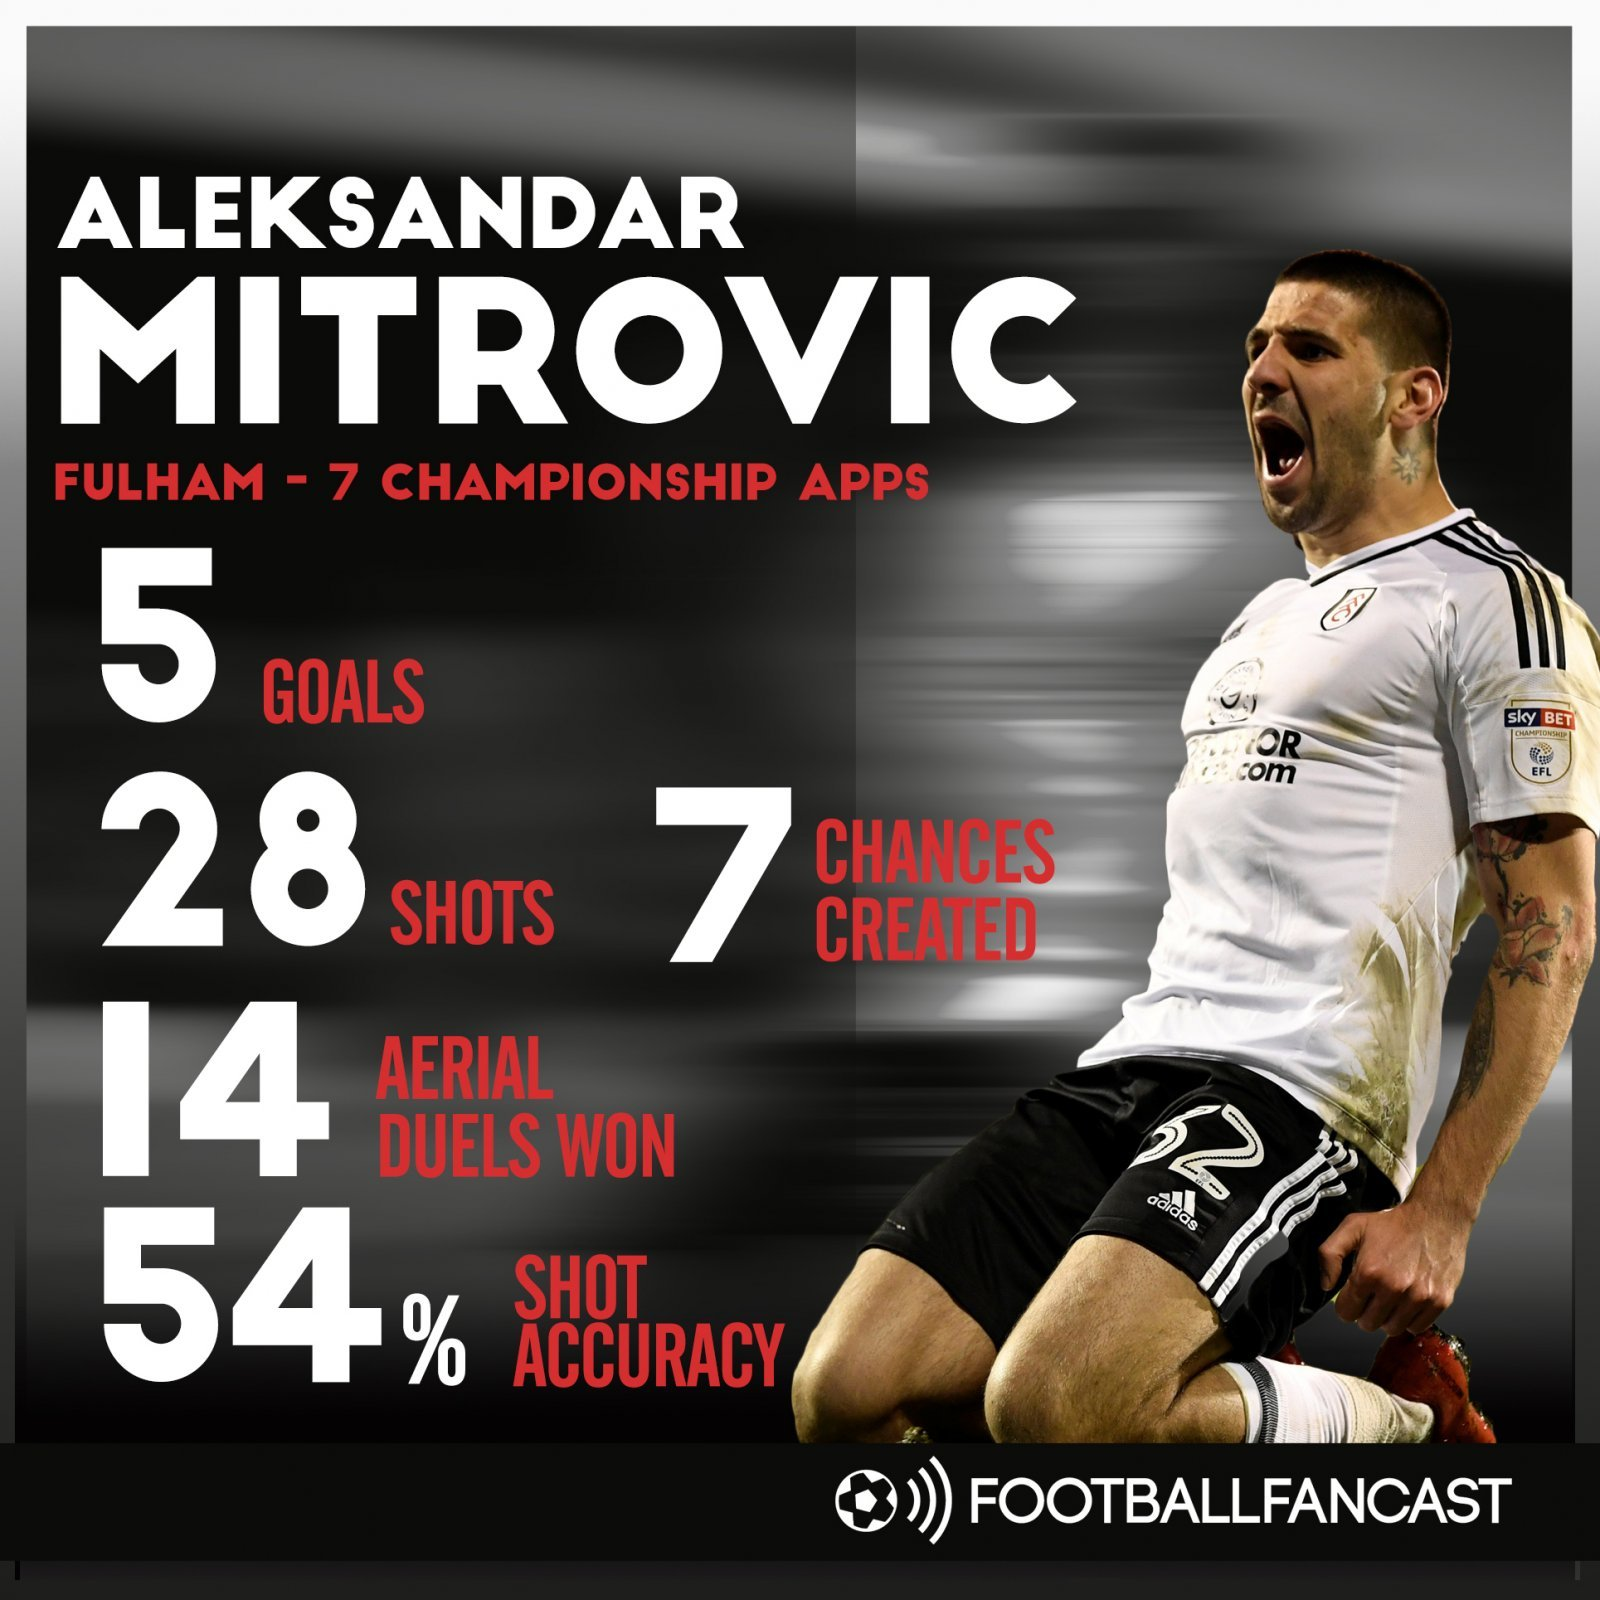 Mitrovic's stats for Fulham